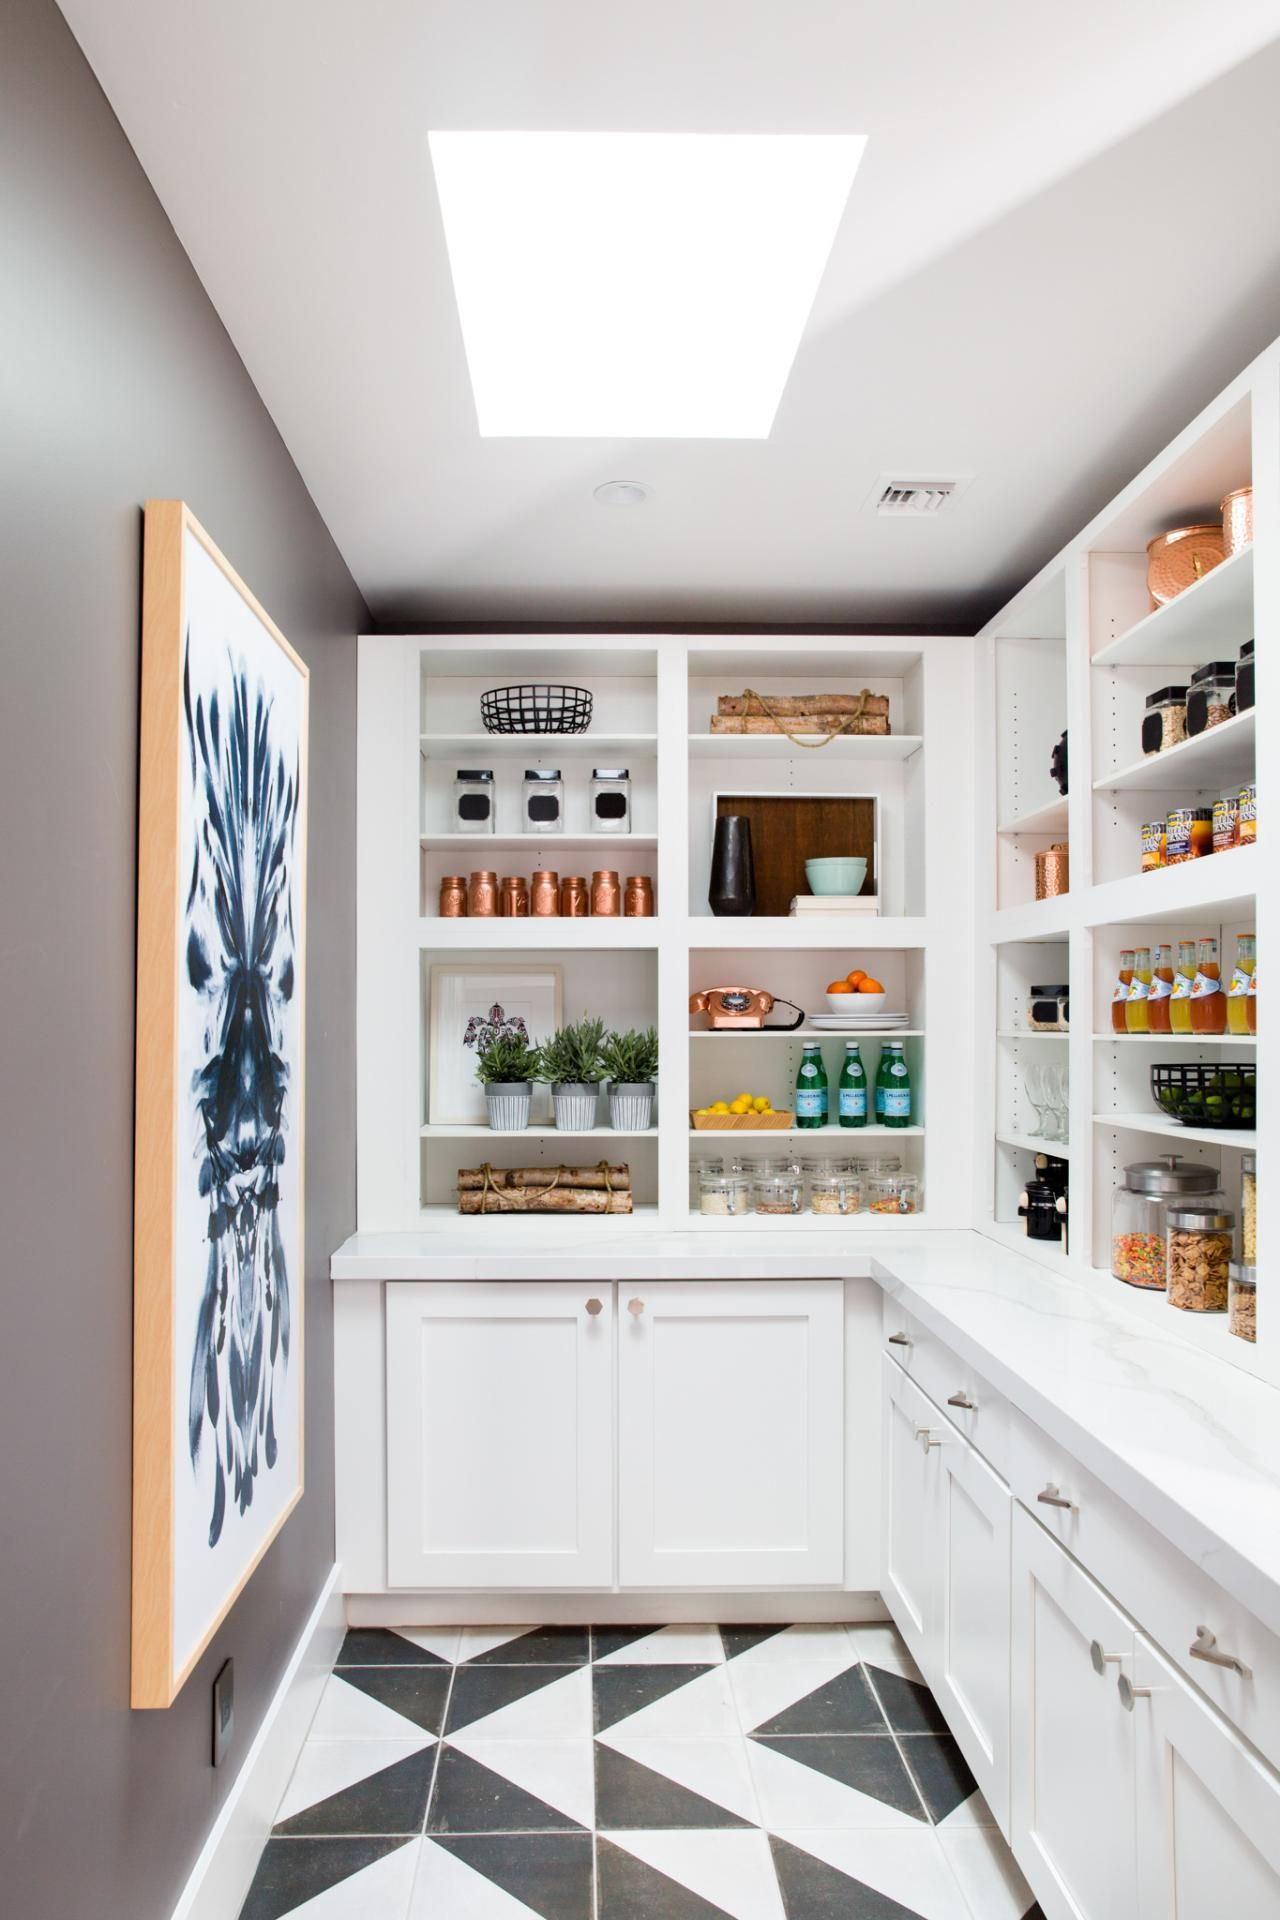 Weekend Cleaning Organizing Ideas | Pinterest | Hgtv, Lights and Pantry